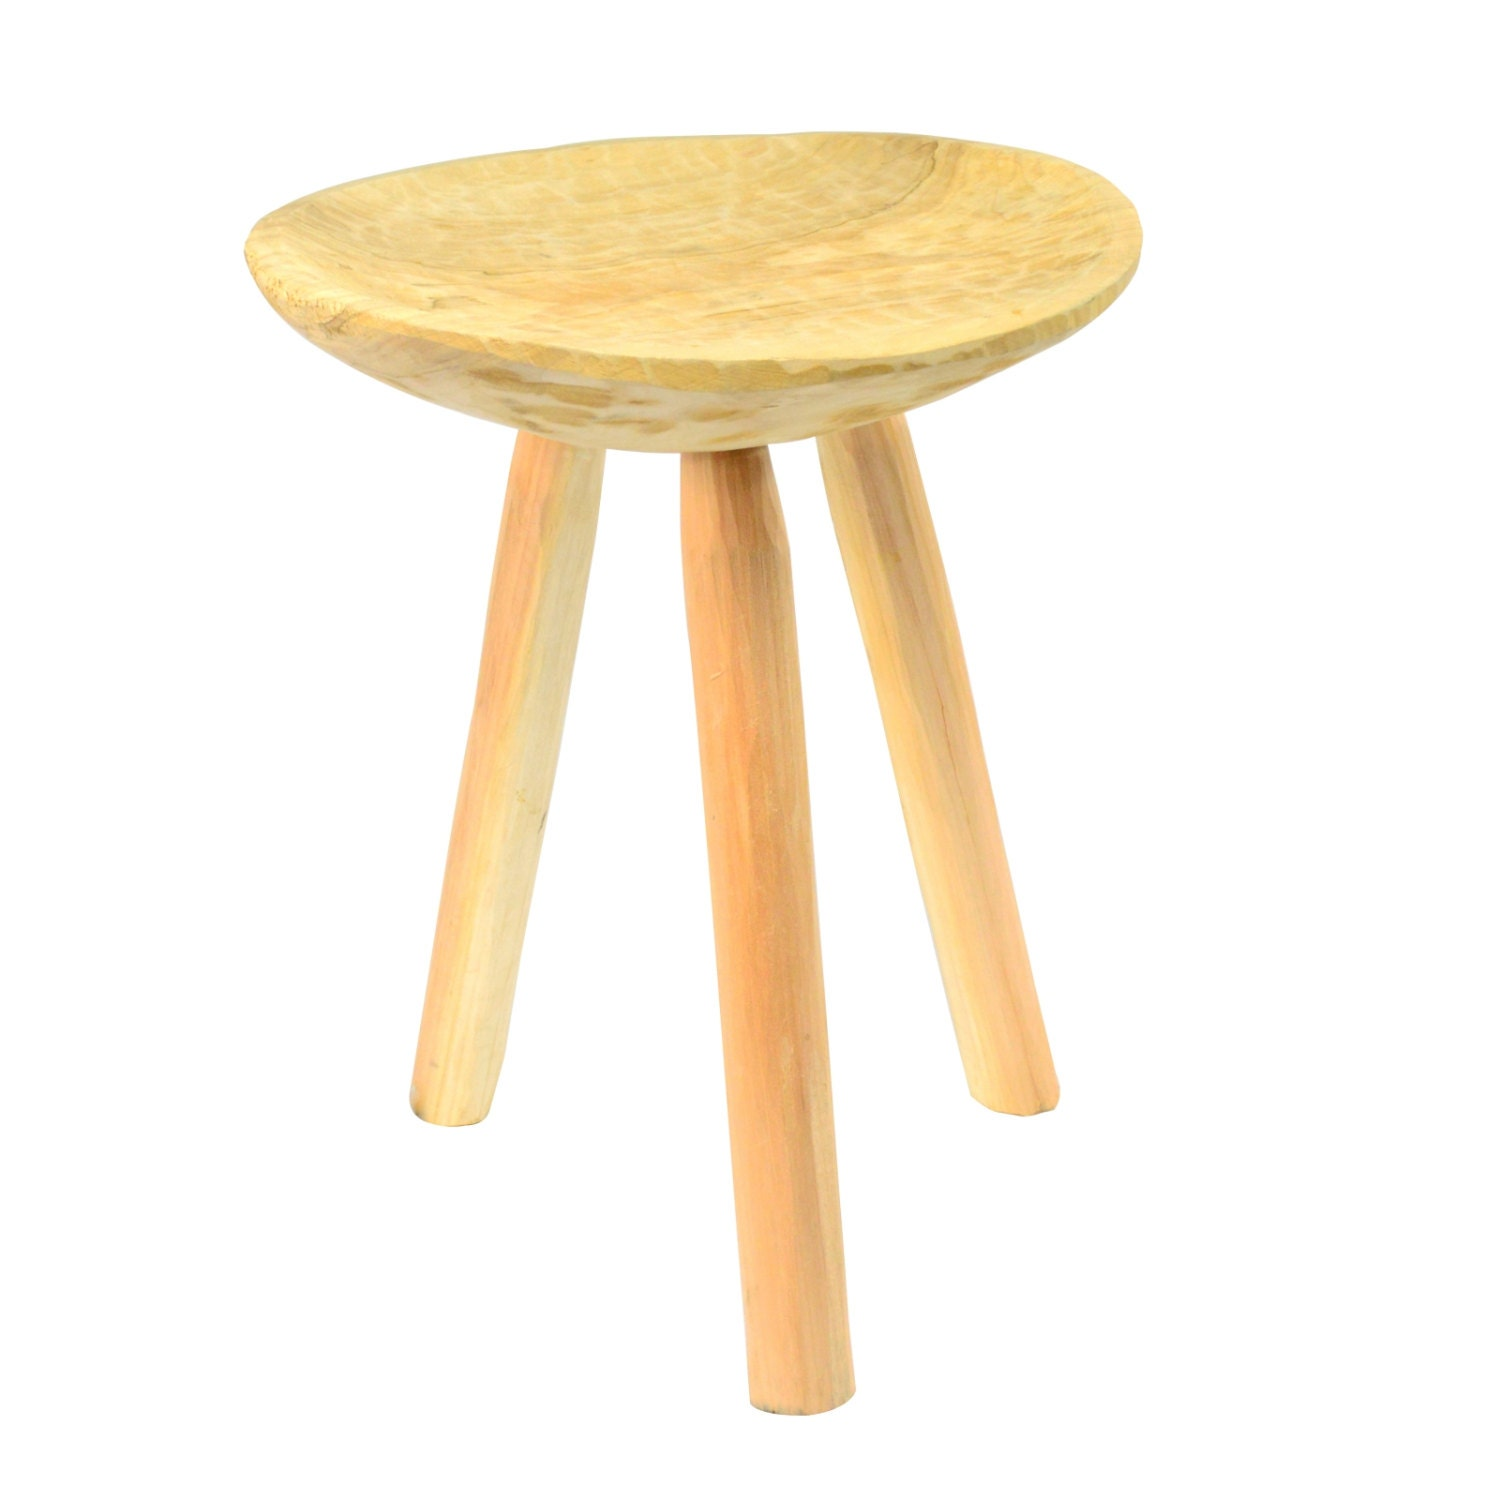 Wooden stool small rustic shabby chic primitive retro vintage